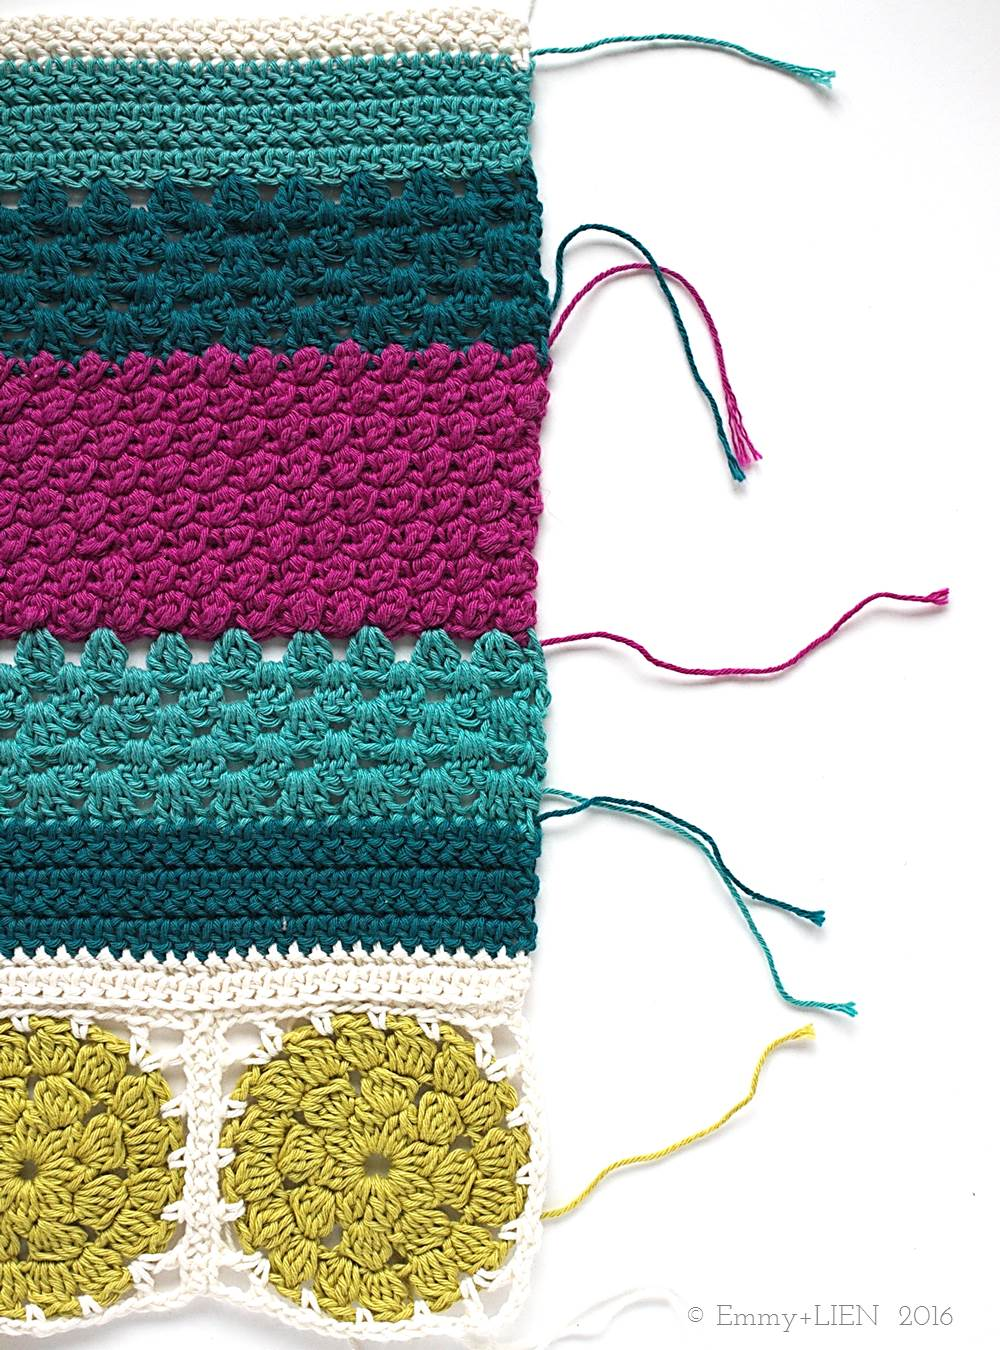 Middle section of the Dally Dahlia Blanket | Emmy + LIEN